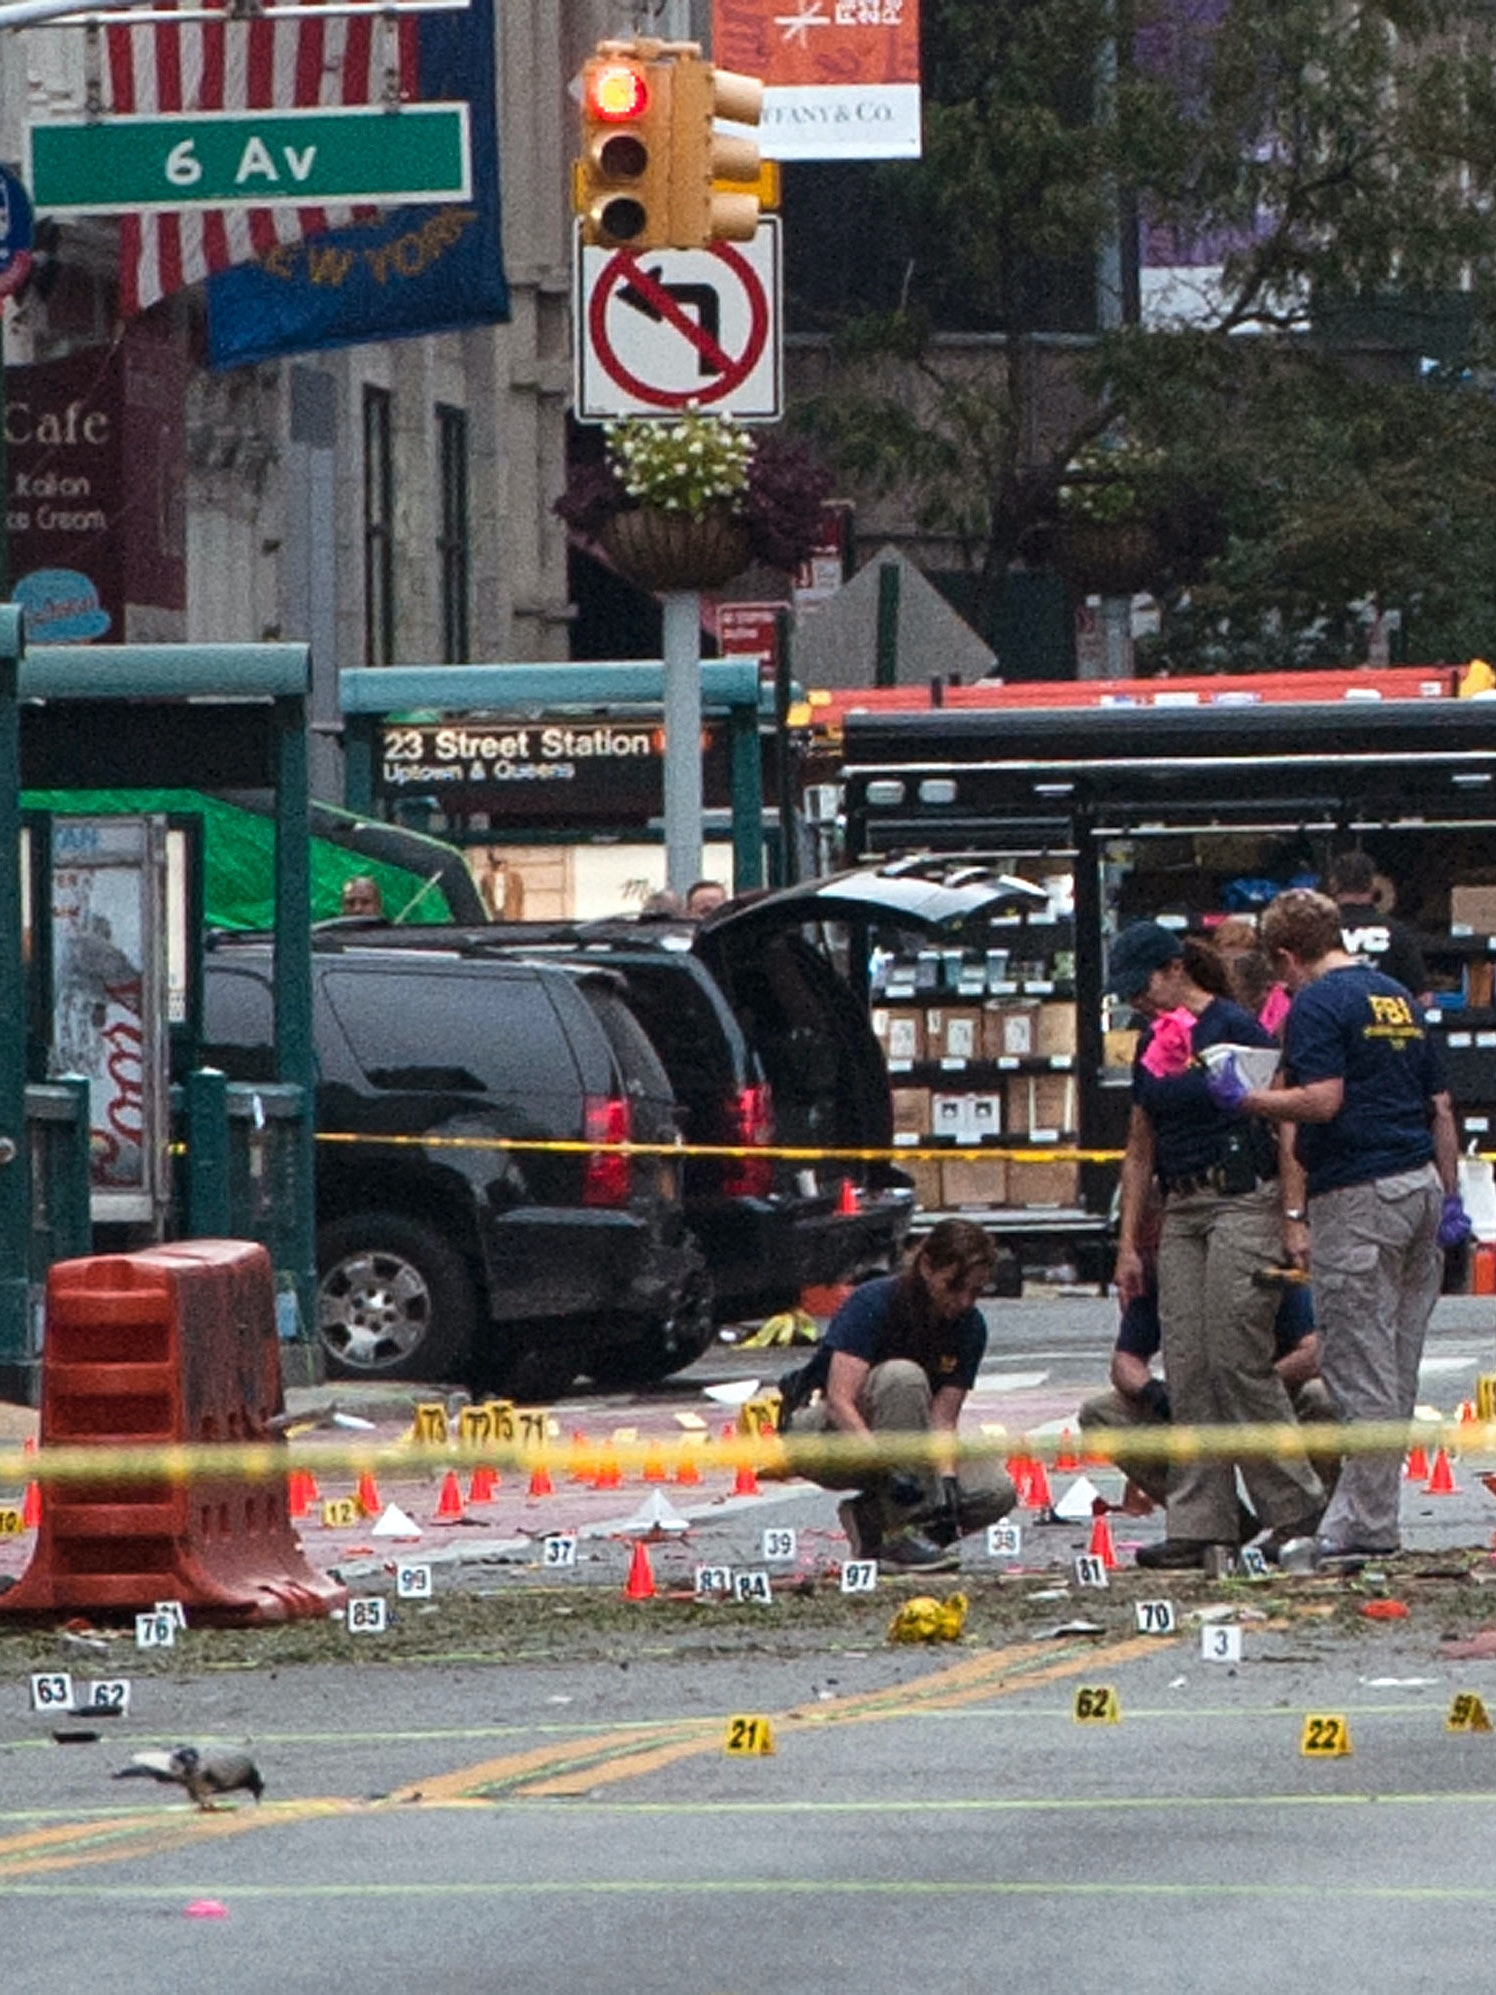 FBI agents review the crime scene of remnants of bomb debris on 23rd St. in Manhattan's Chelsea neighborhood on September 18, 2016 in New York City.